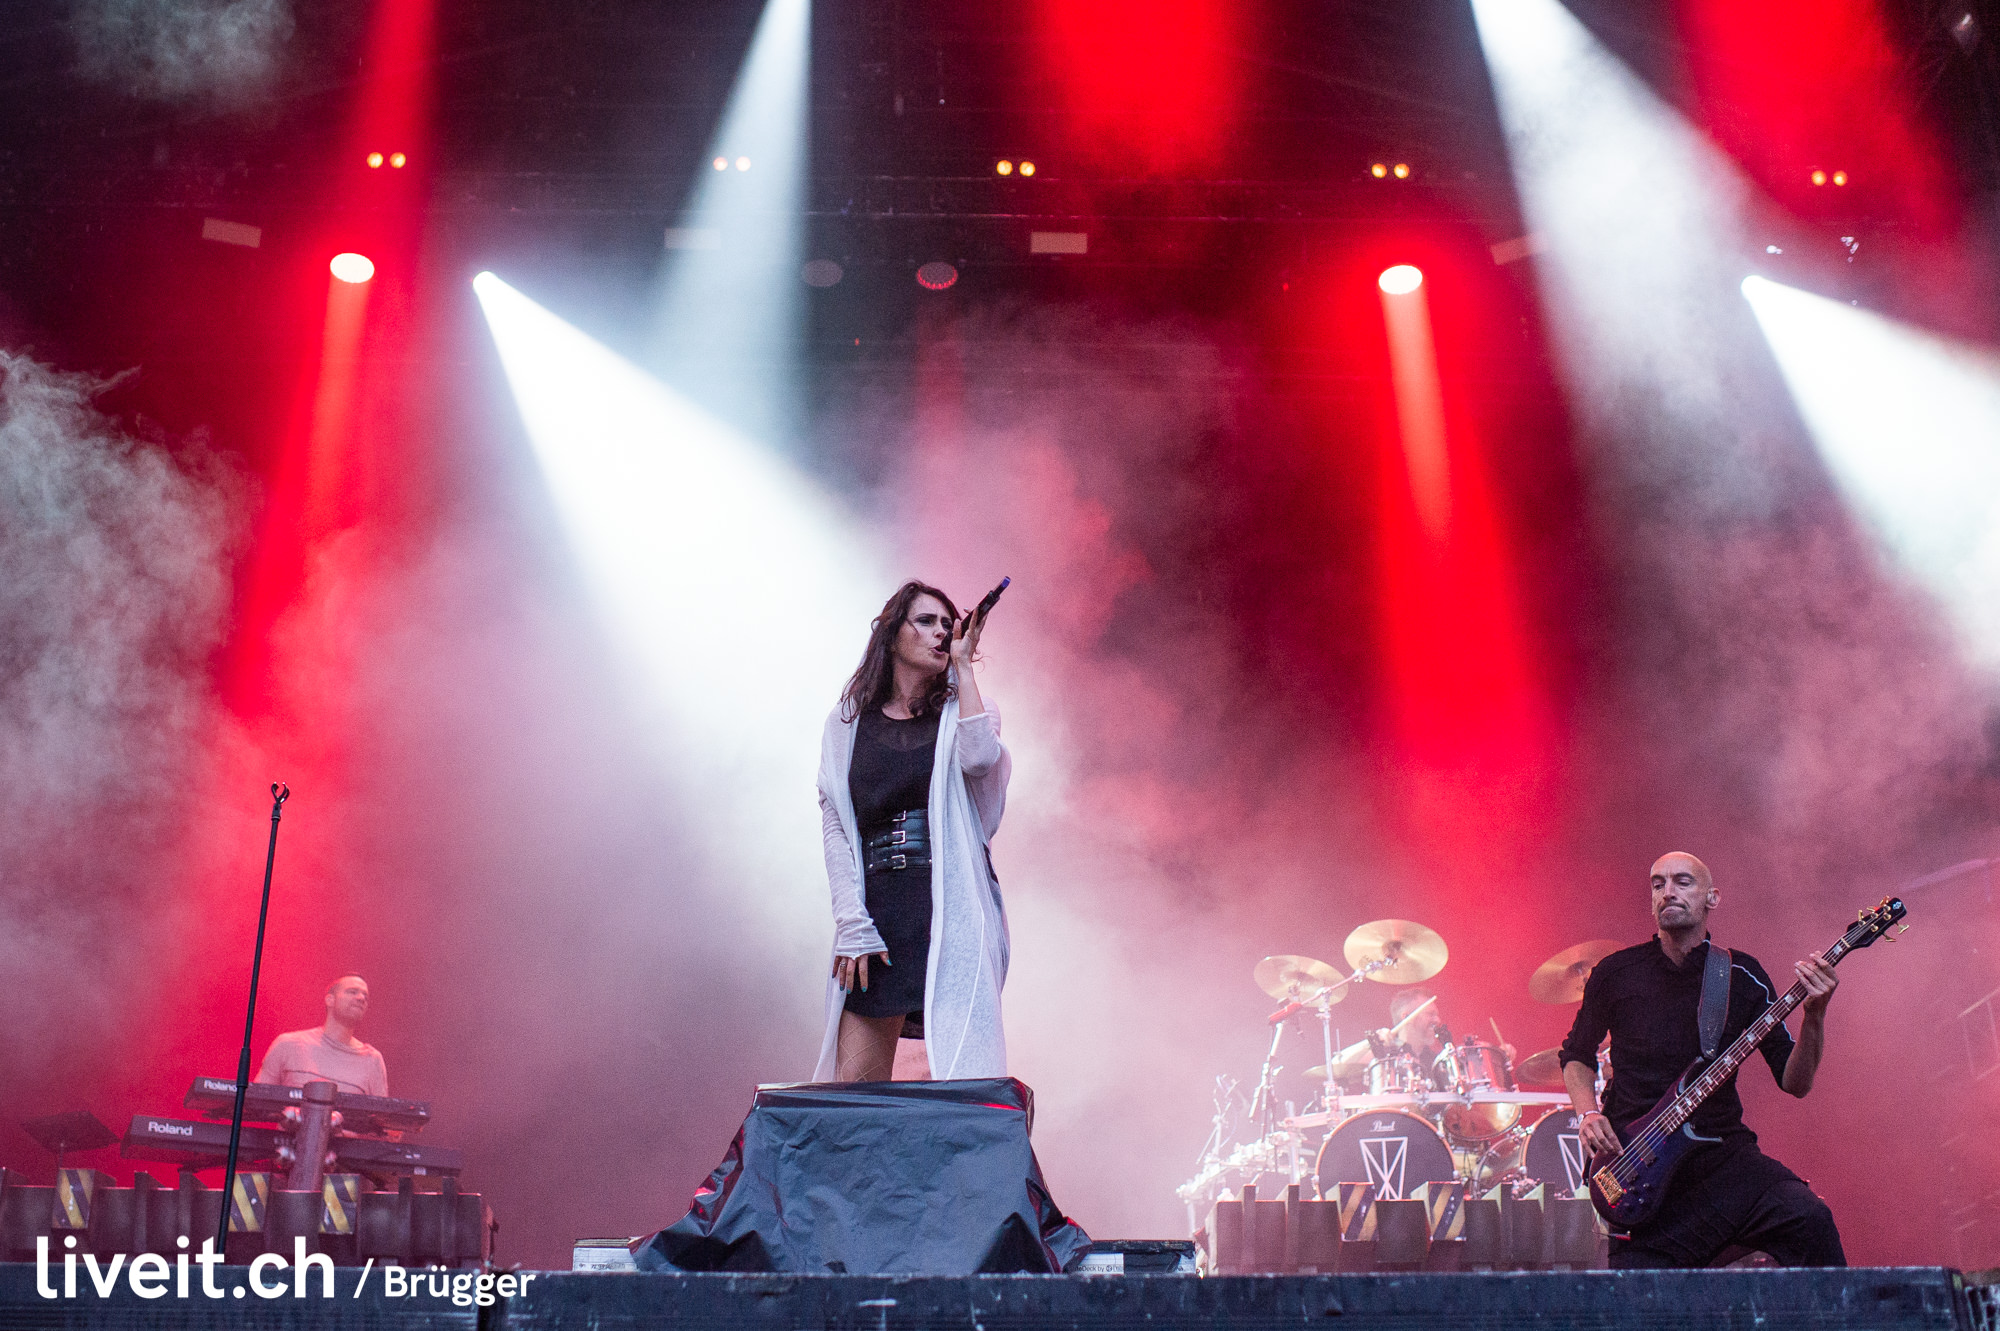 SCHWEIZ GREENFIELD FESTIVAL 2019 Within Temptation